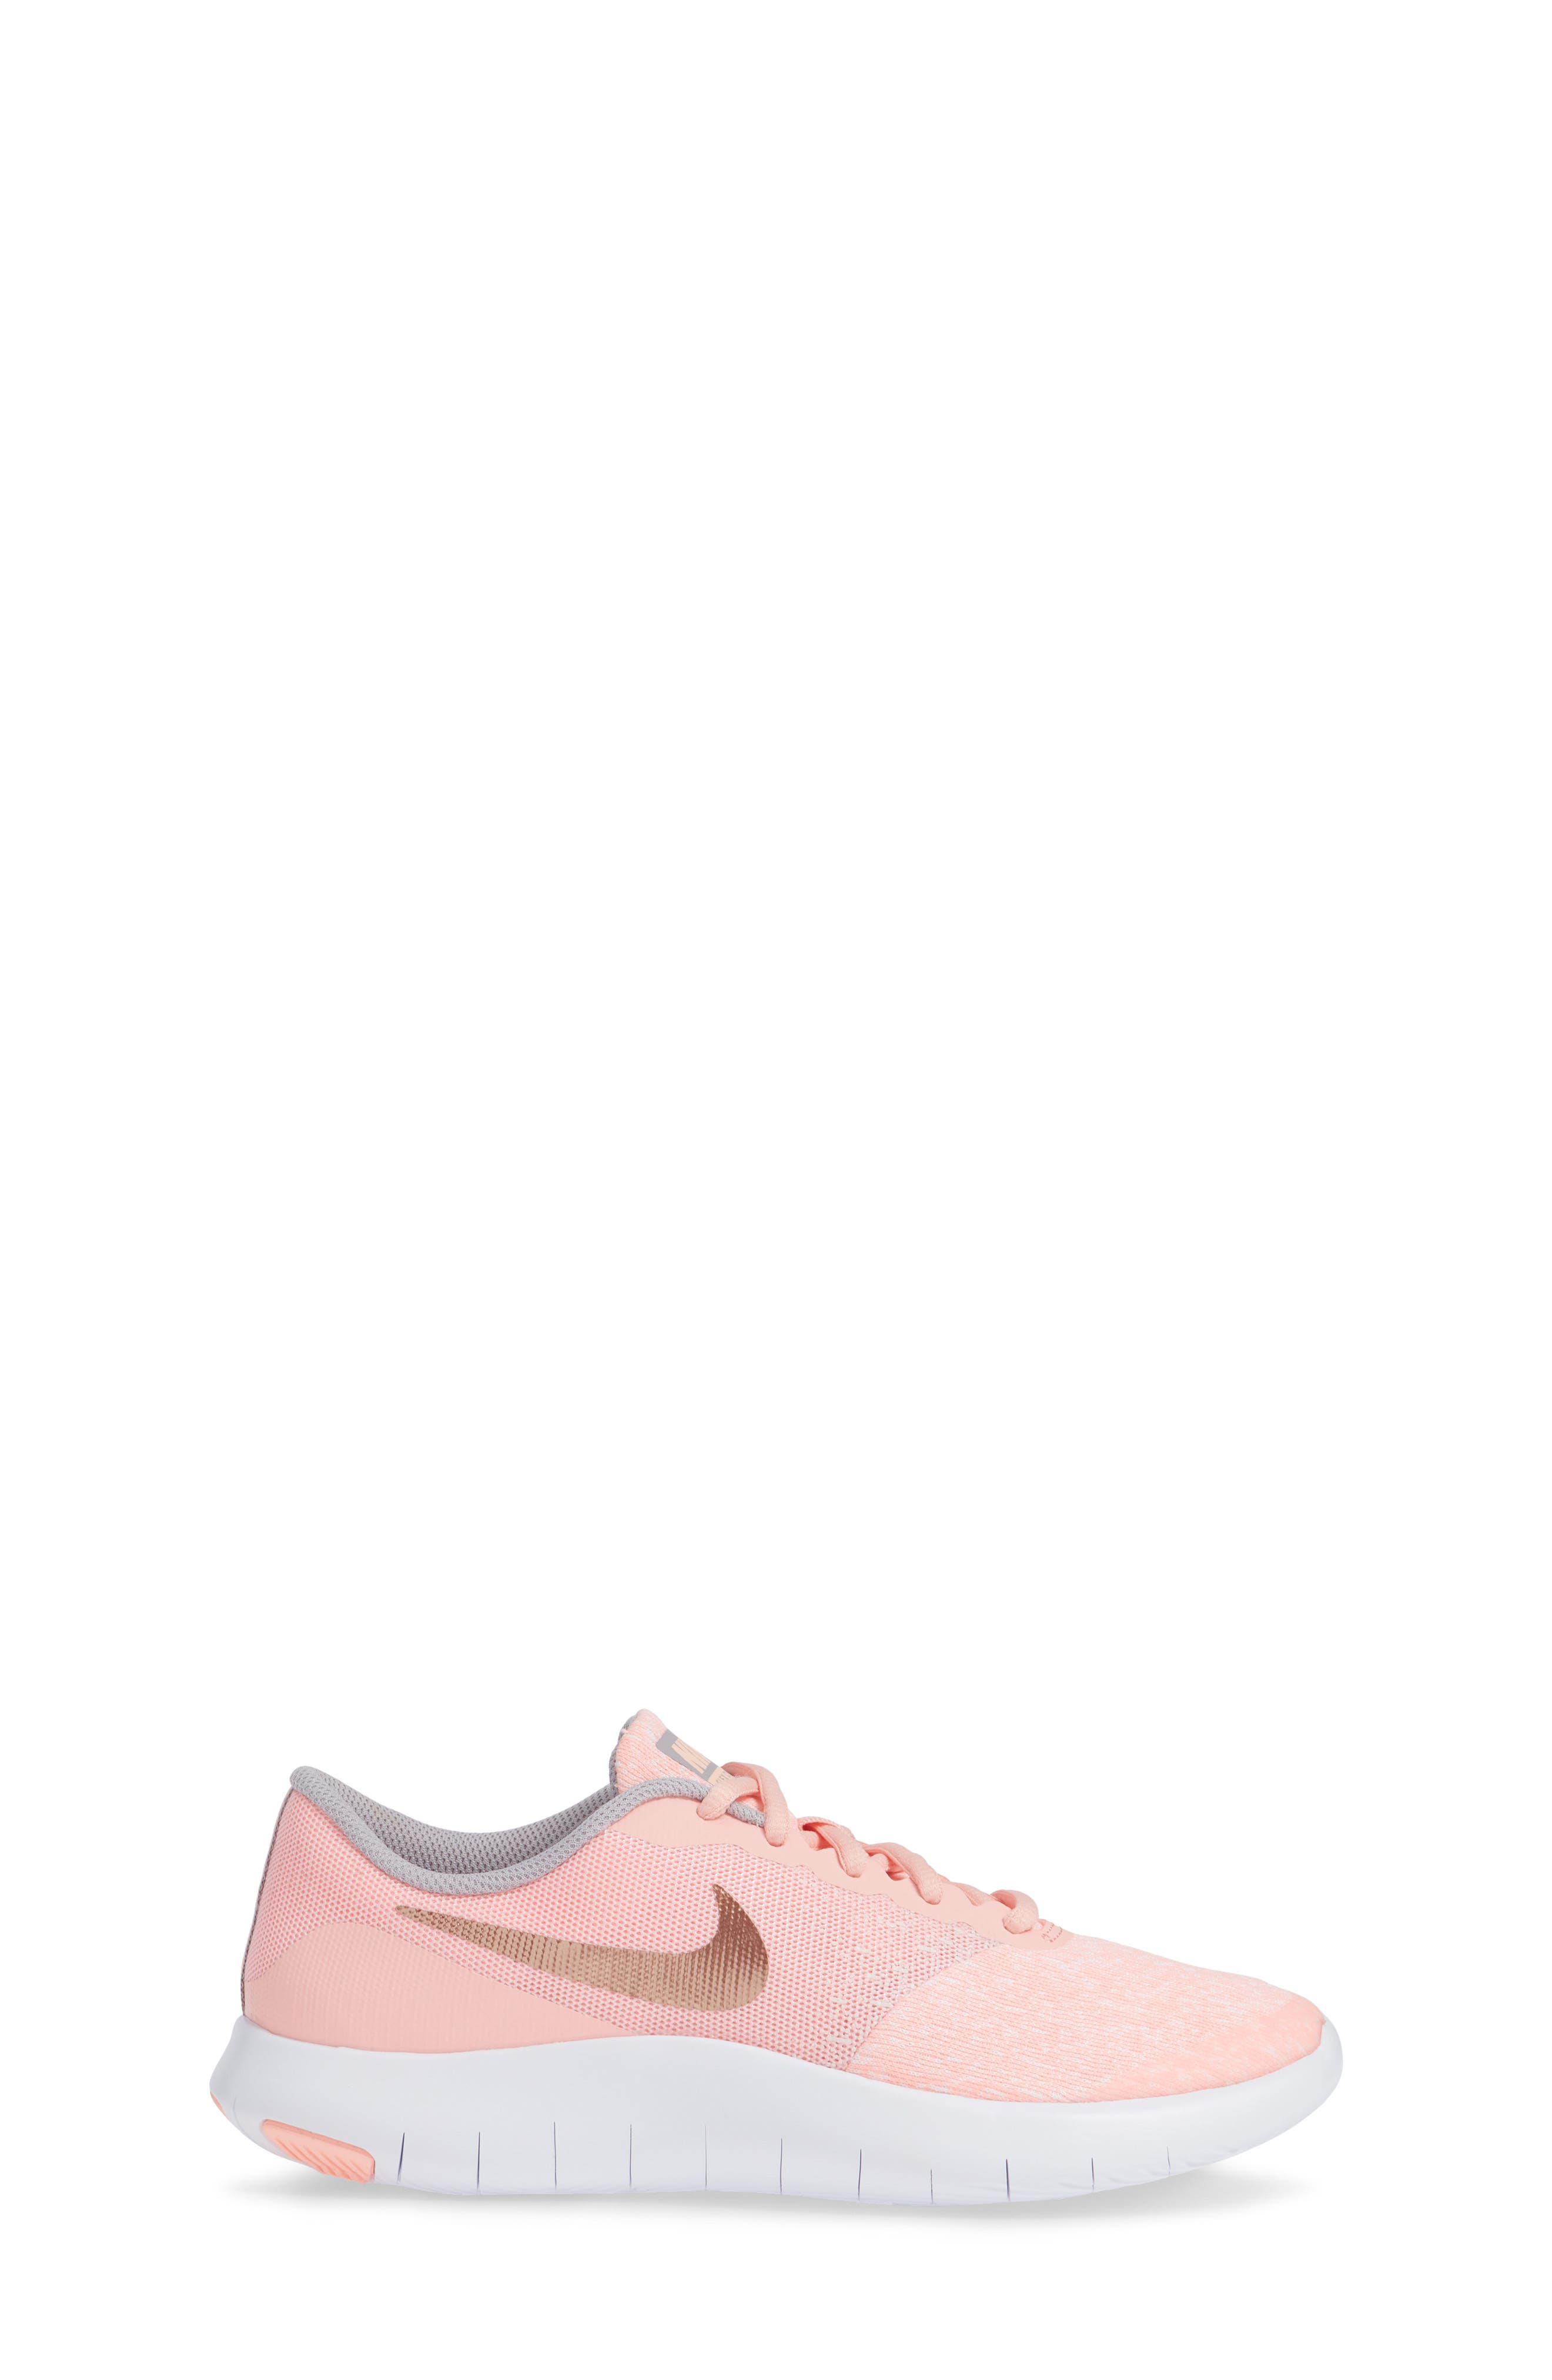 Flex Contact Running Shoe,                             Alternate thumbnail 3, color,                             ROSE GOLD/ STORM PINK